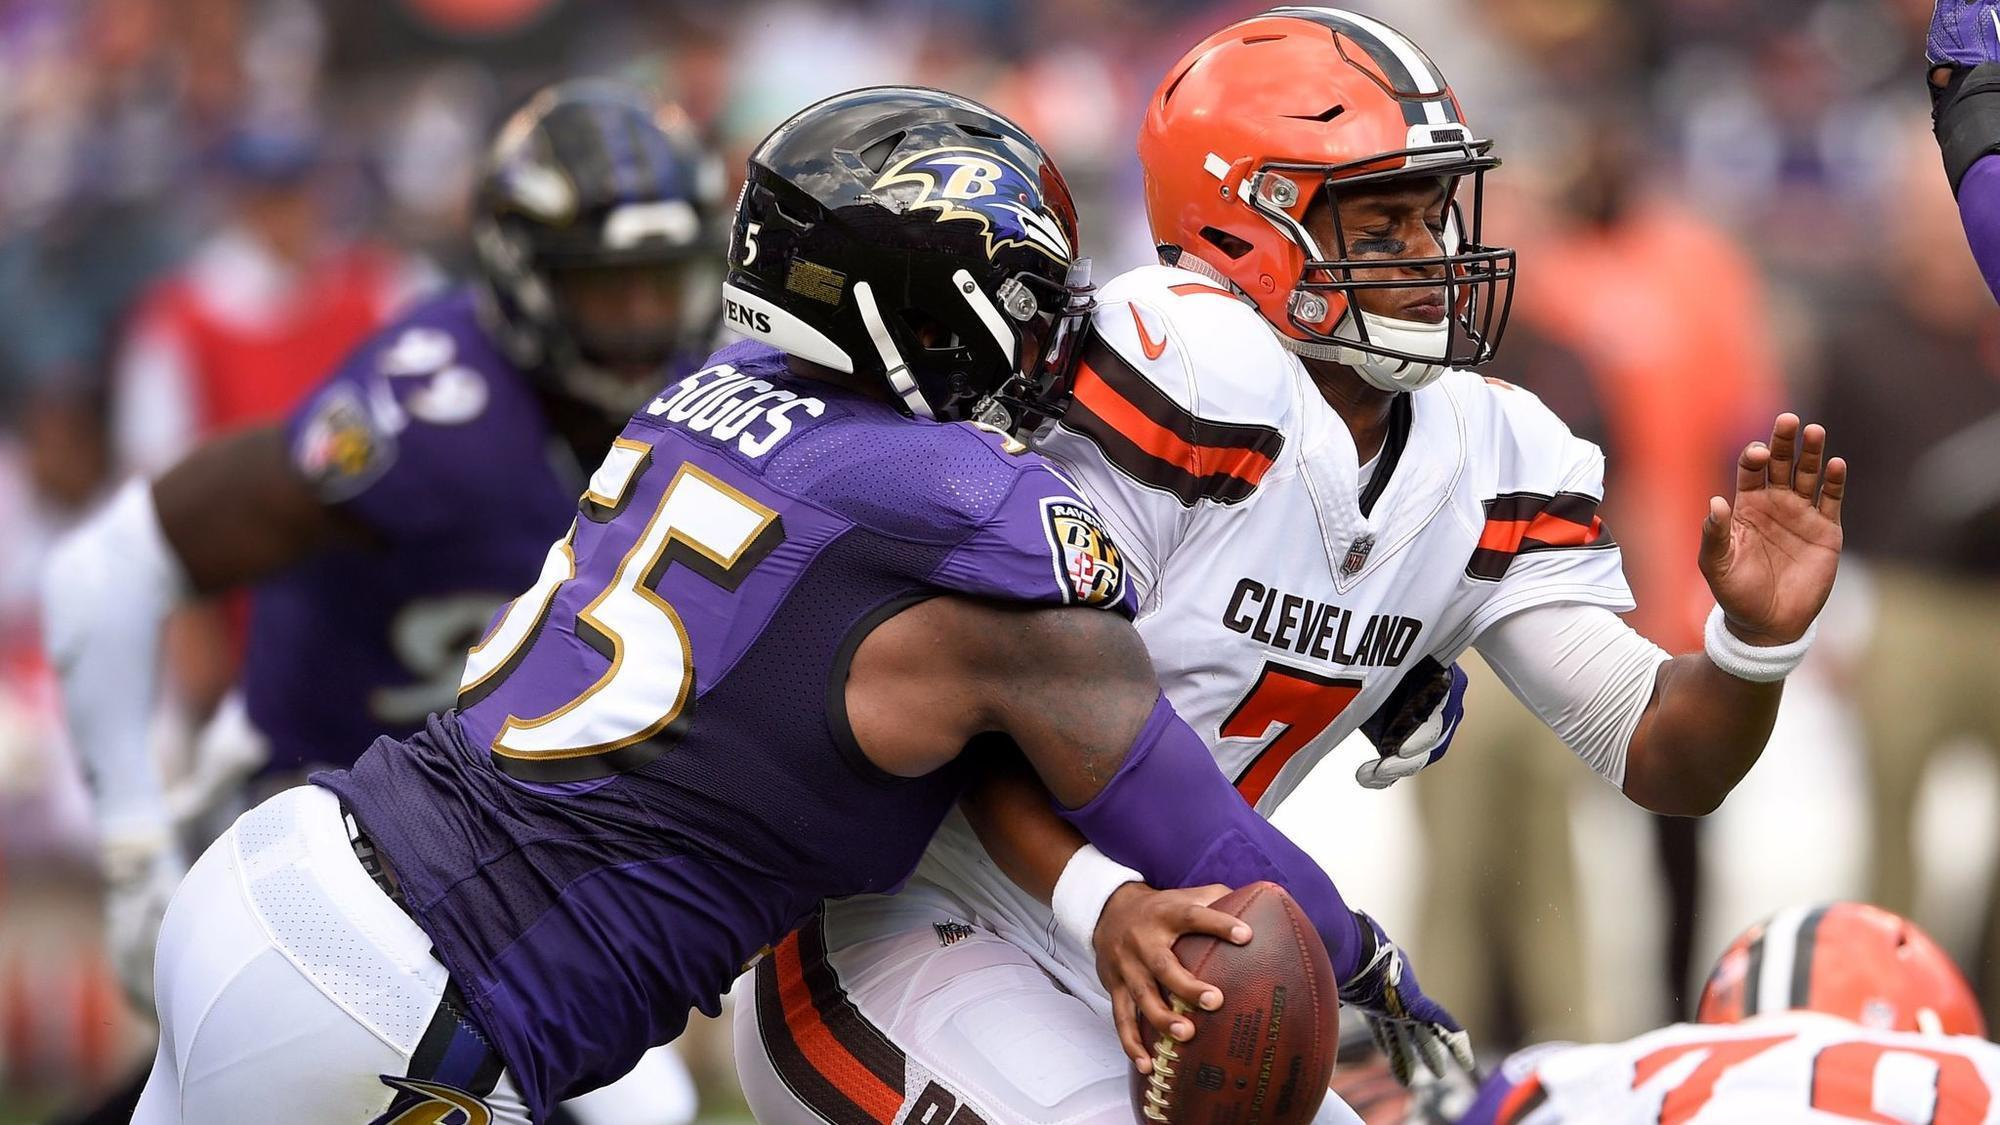 http://www.trbimg.com/img-5a3279c4/turbine/bs-sp-ravens-browns-rematch-scouting-report-20171213